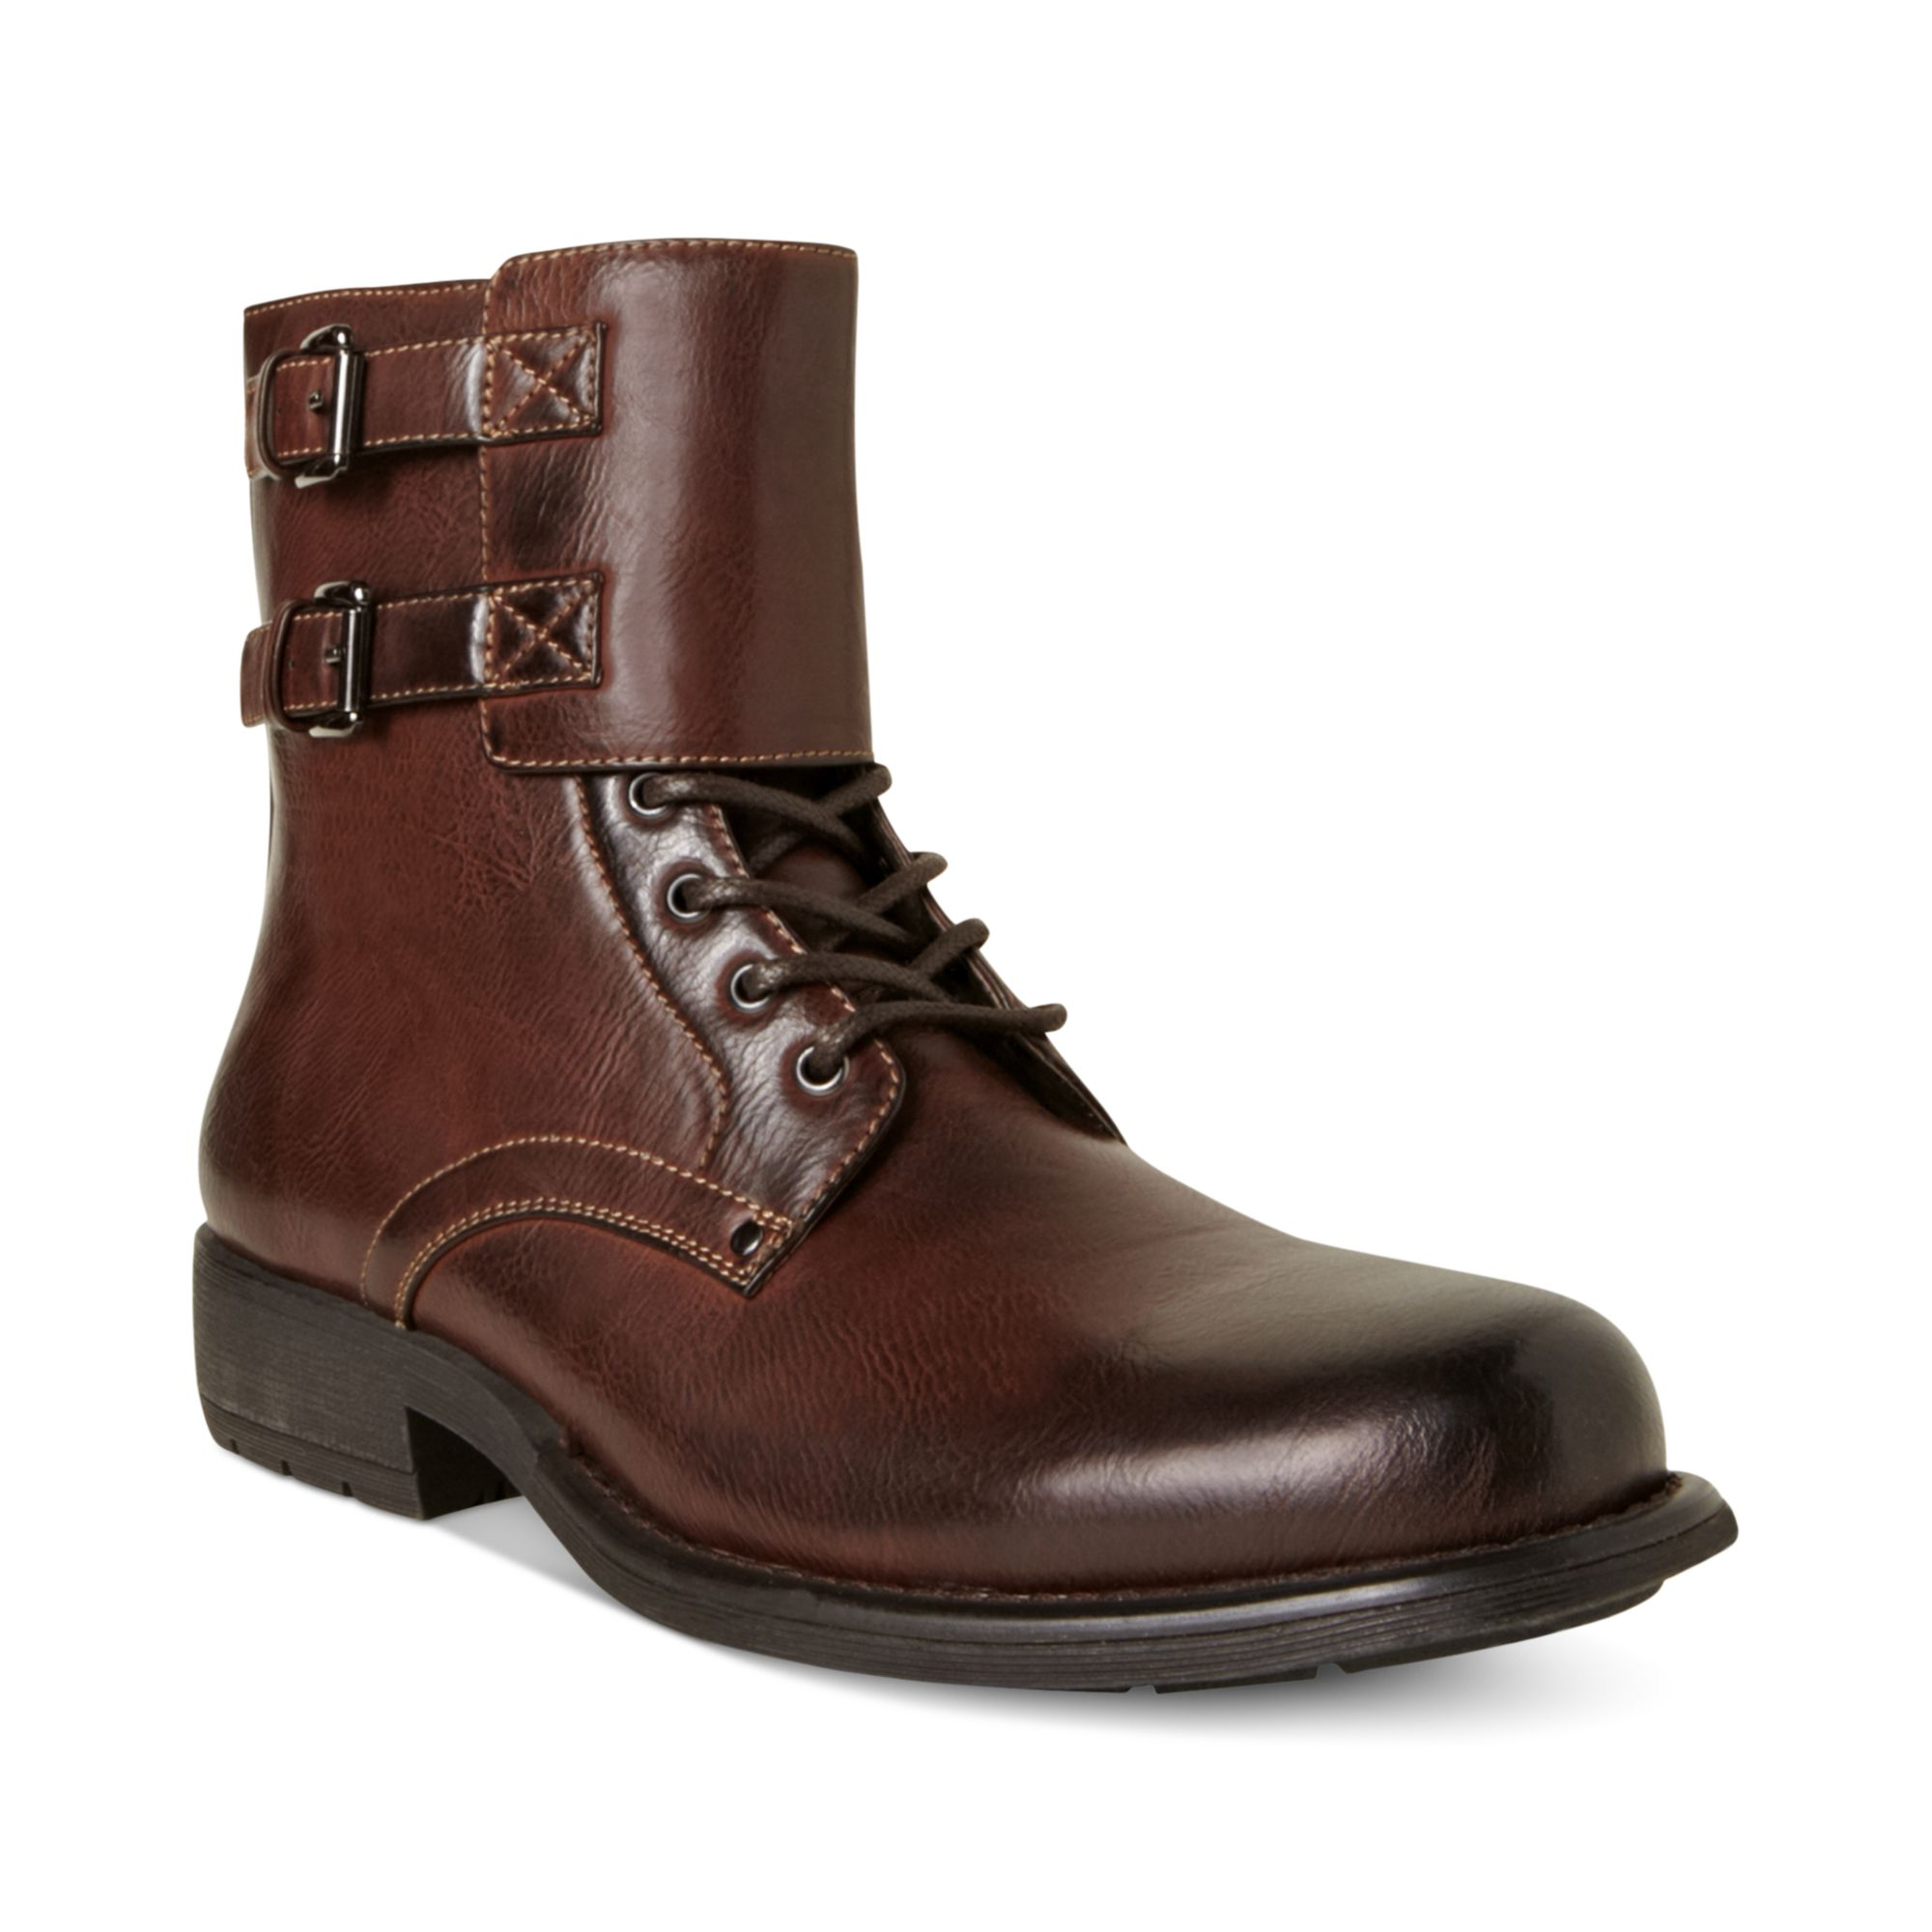 Lyst Steve Madden Pello Motorcycle Boots In Brown For Men